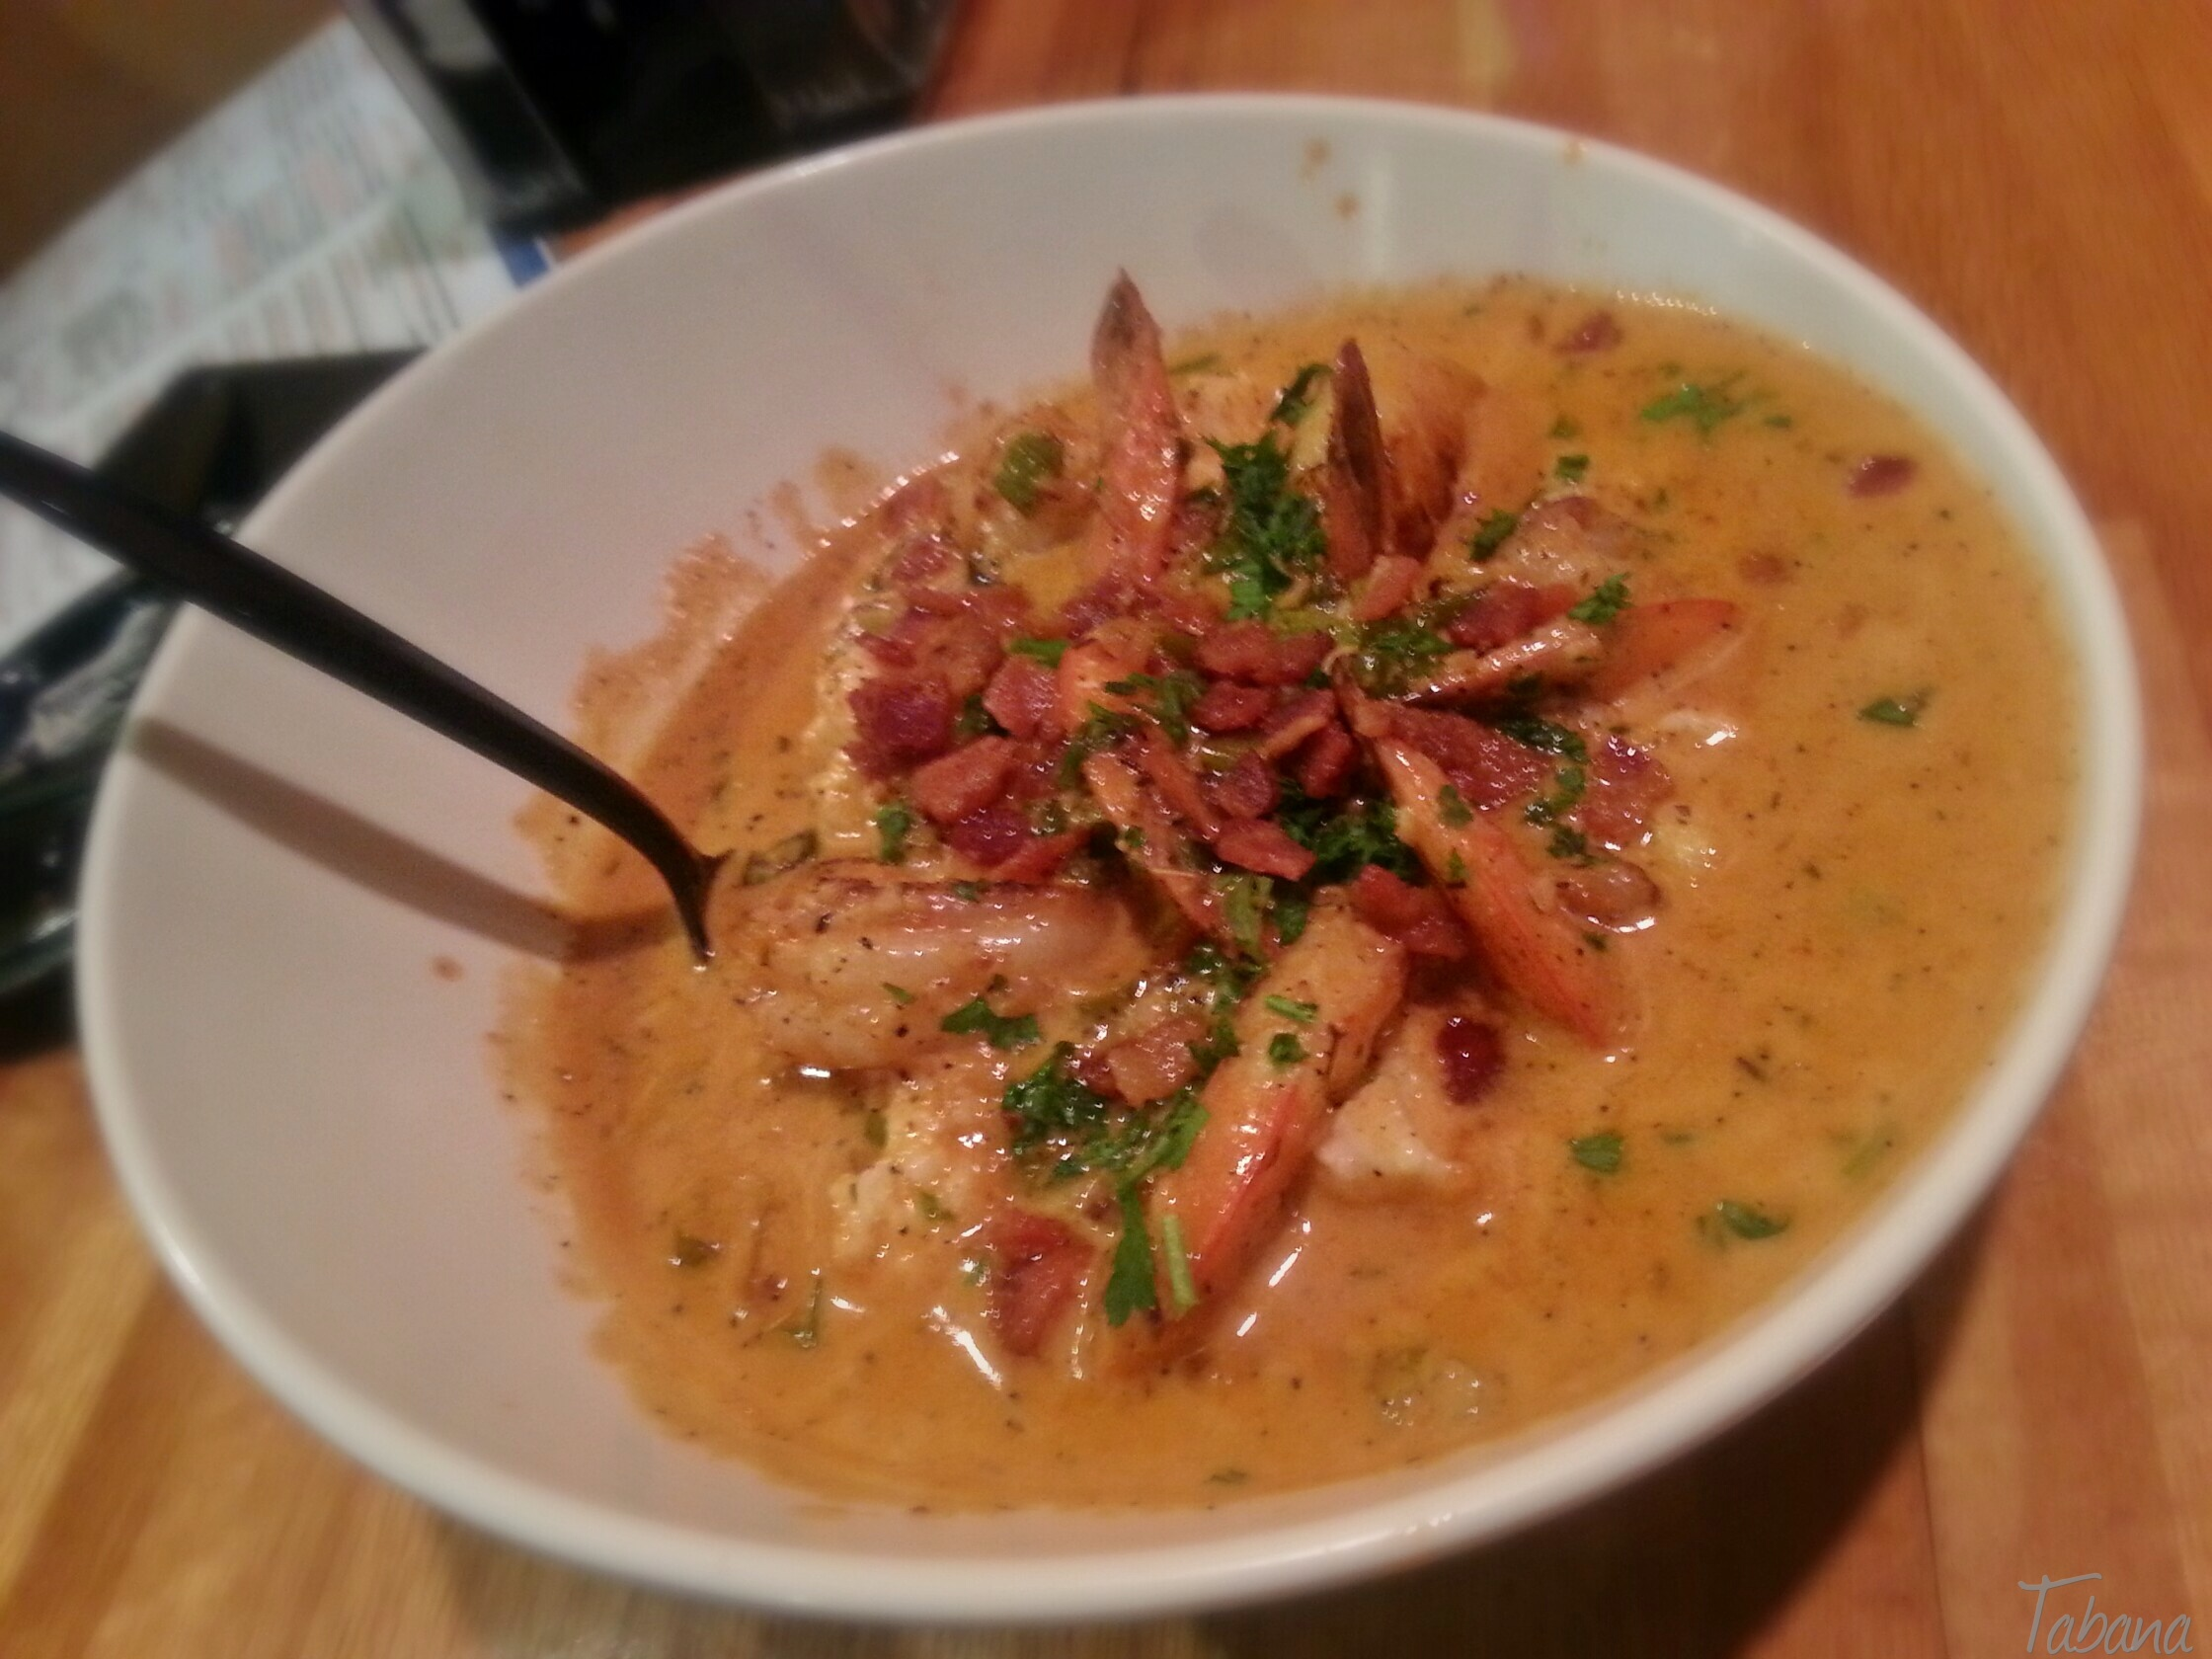 jim hanson's shrimp and grits